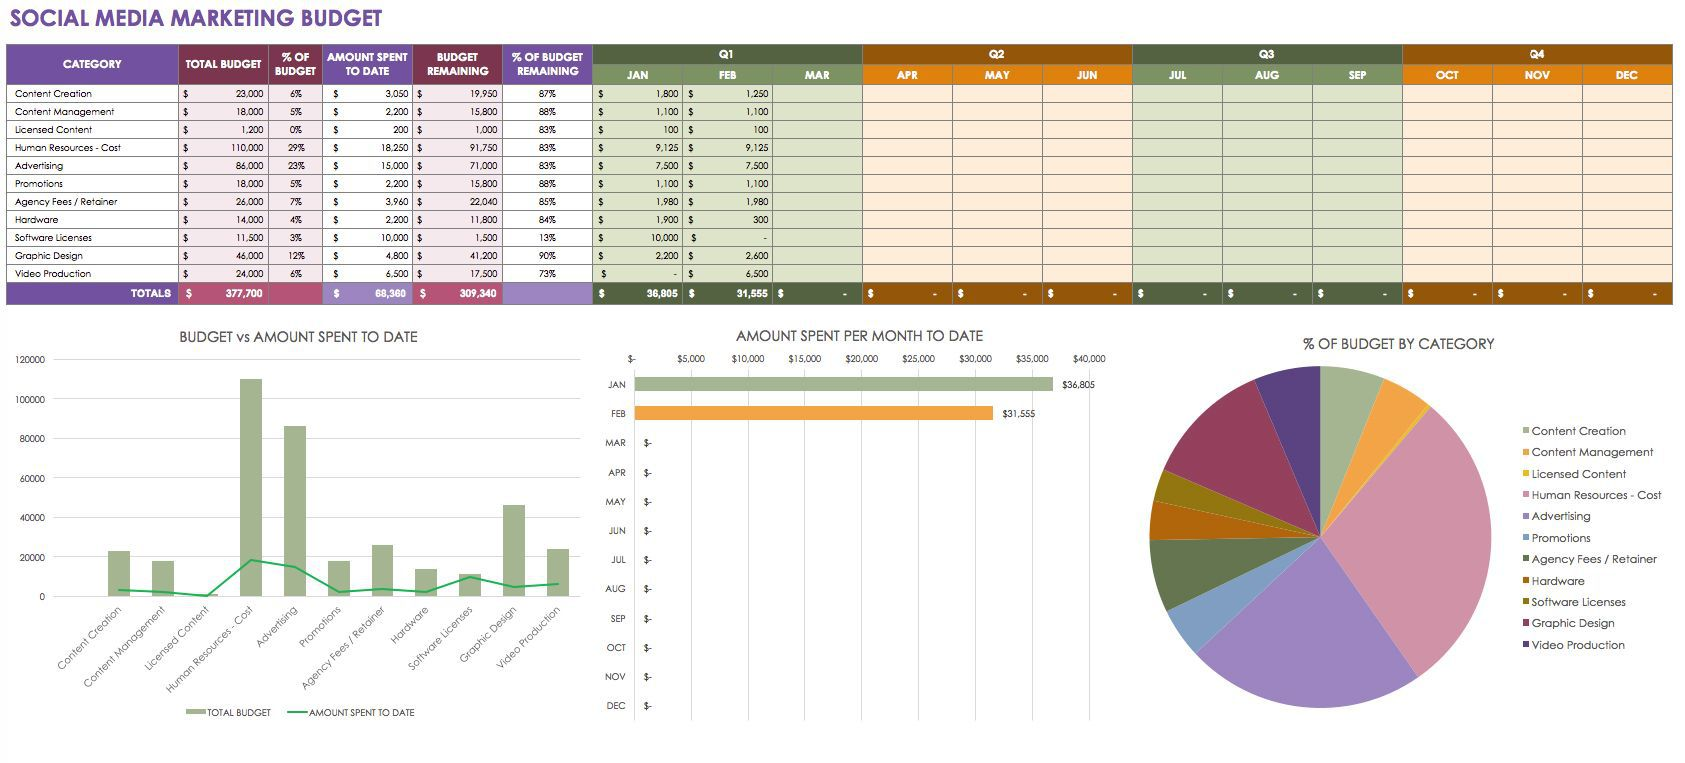 001 Exceptional Video Production Budget Template Image  Example Excel SampleFull